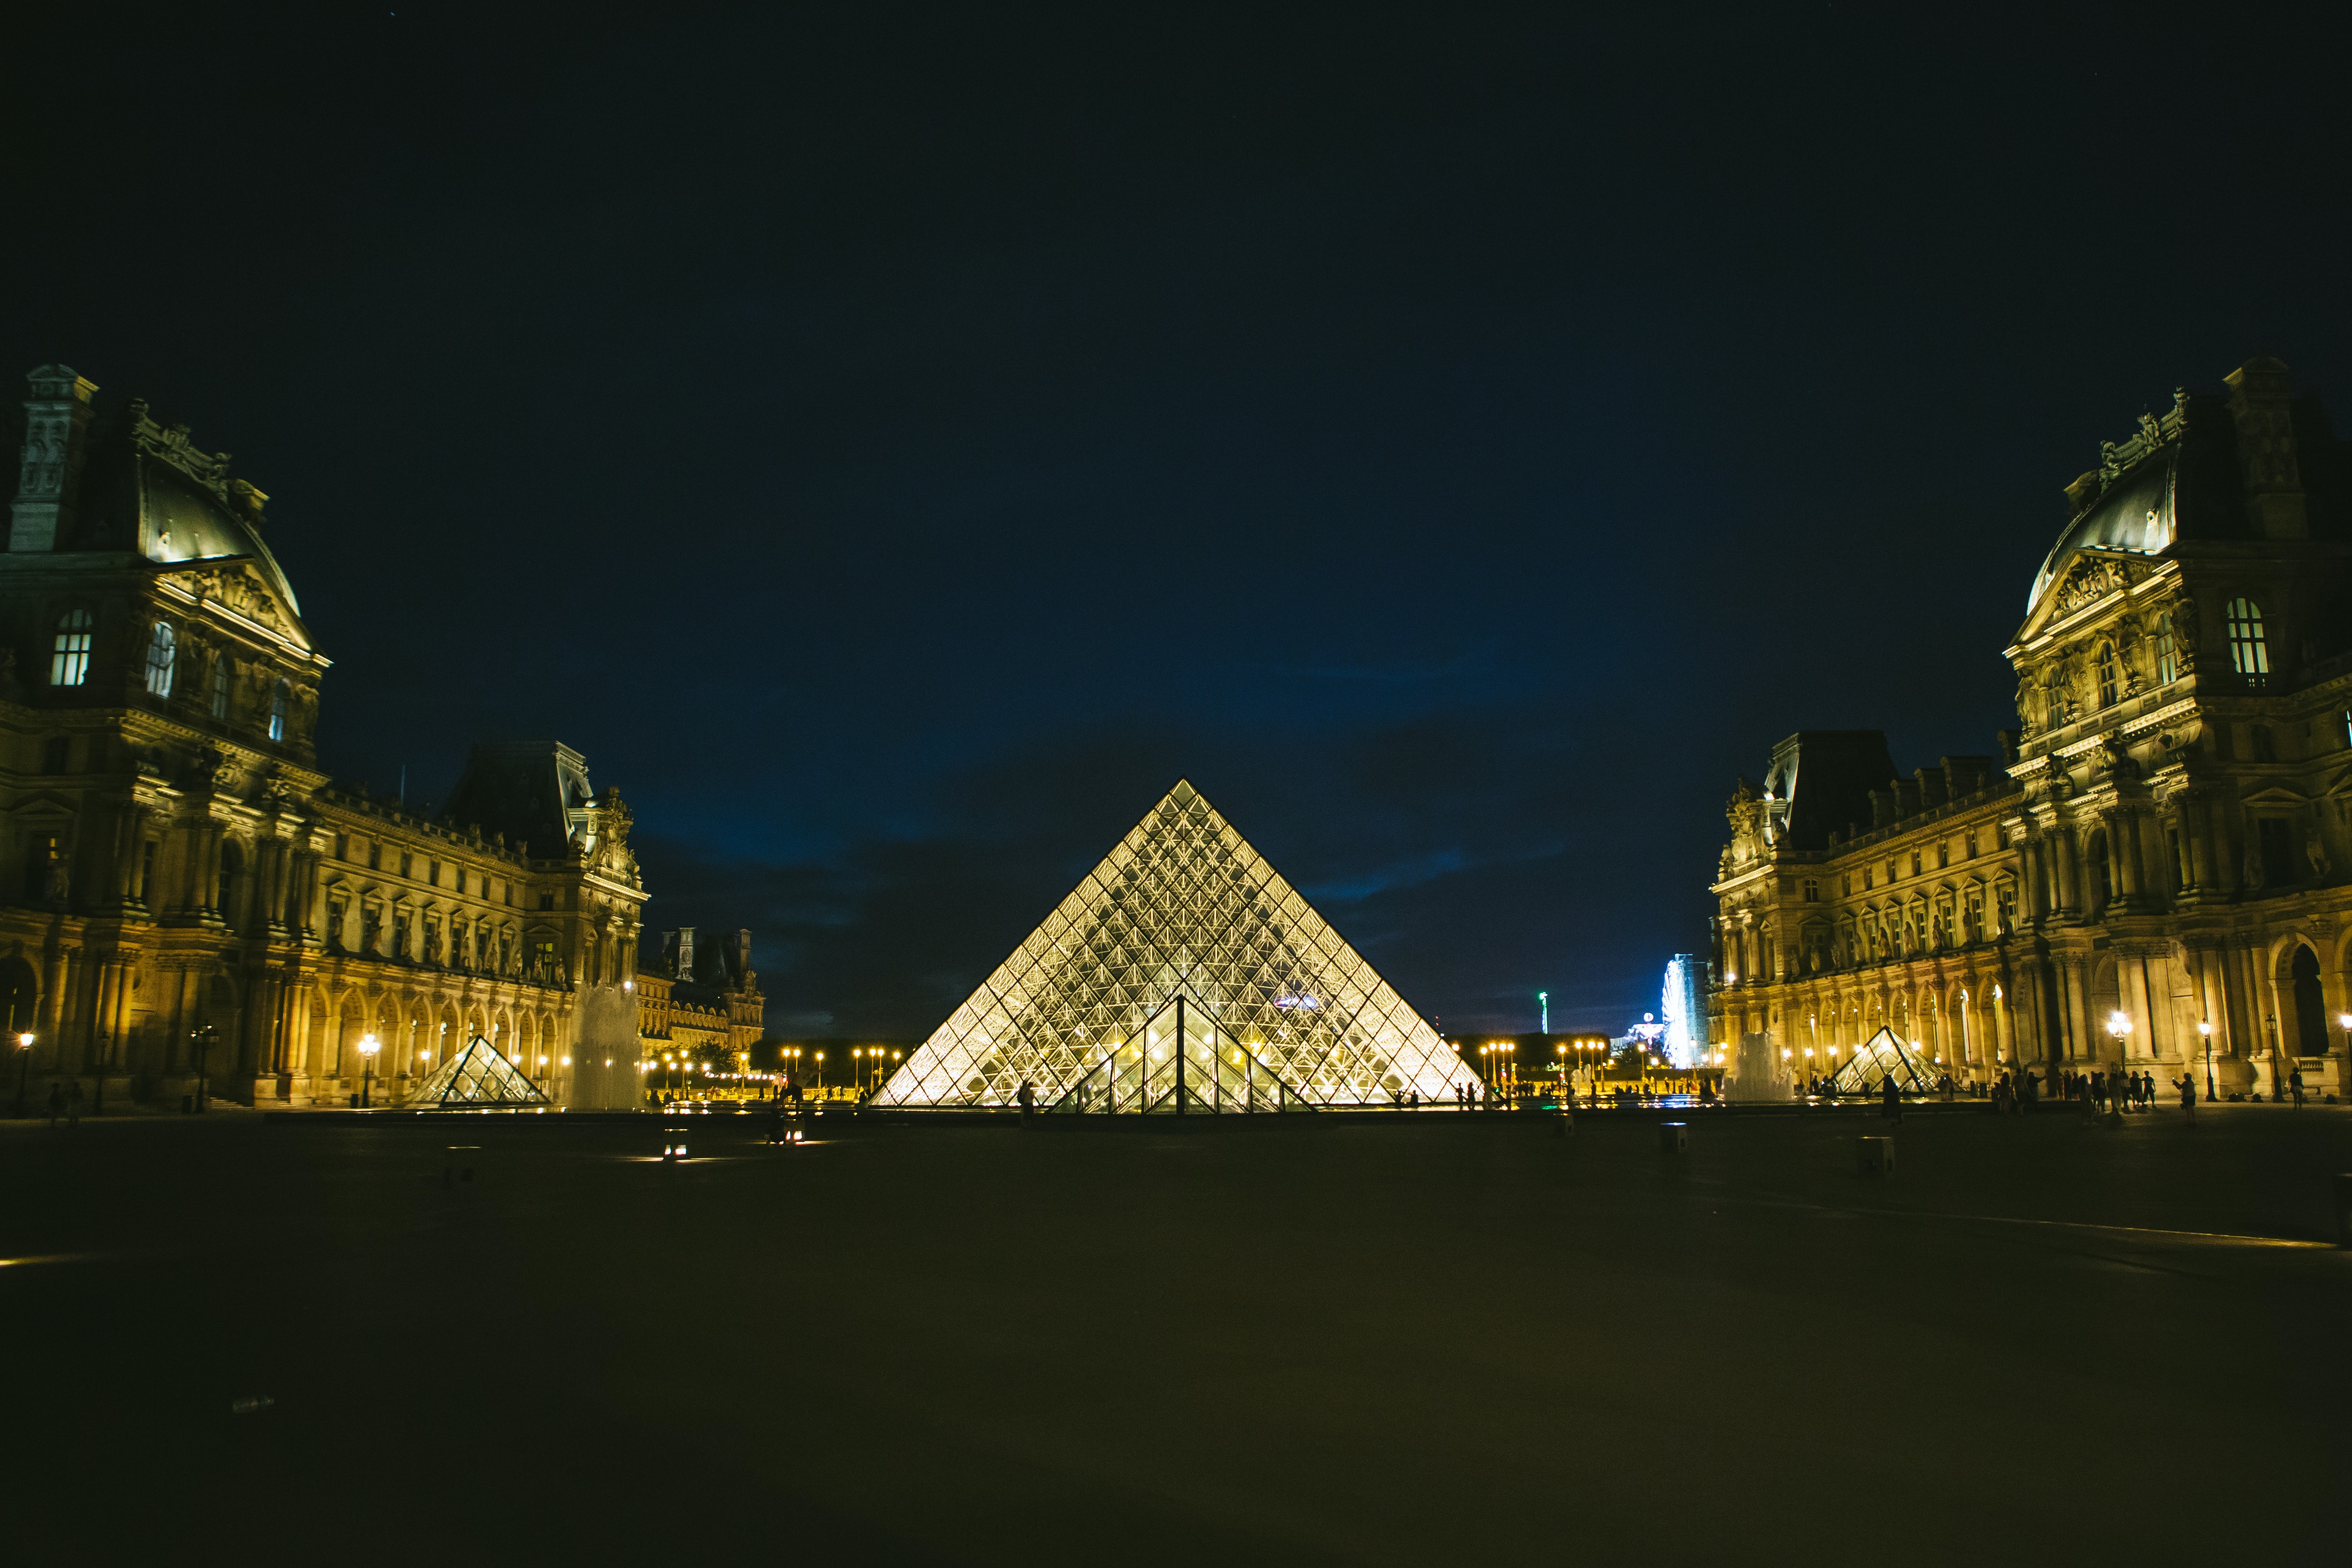 The Louvre Museum pyramid illuminated at night